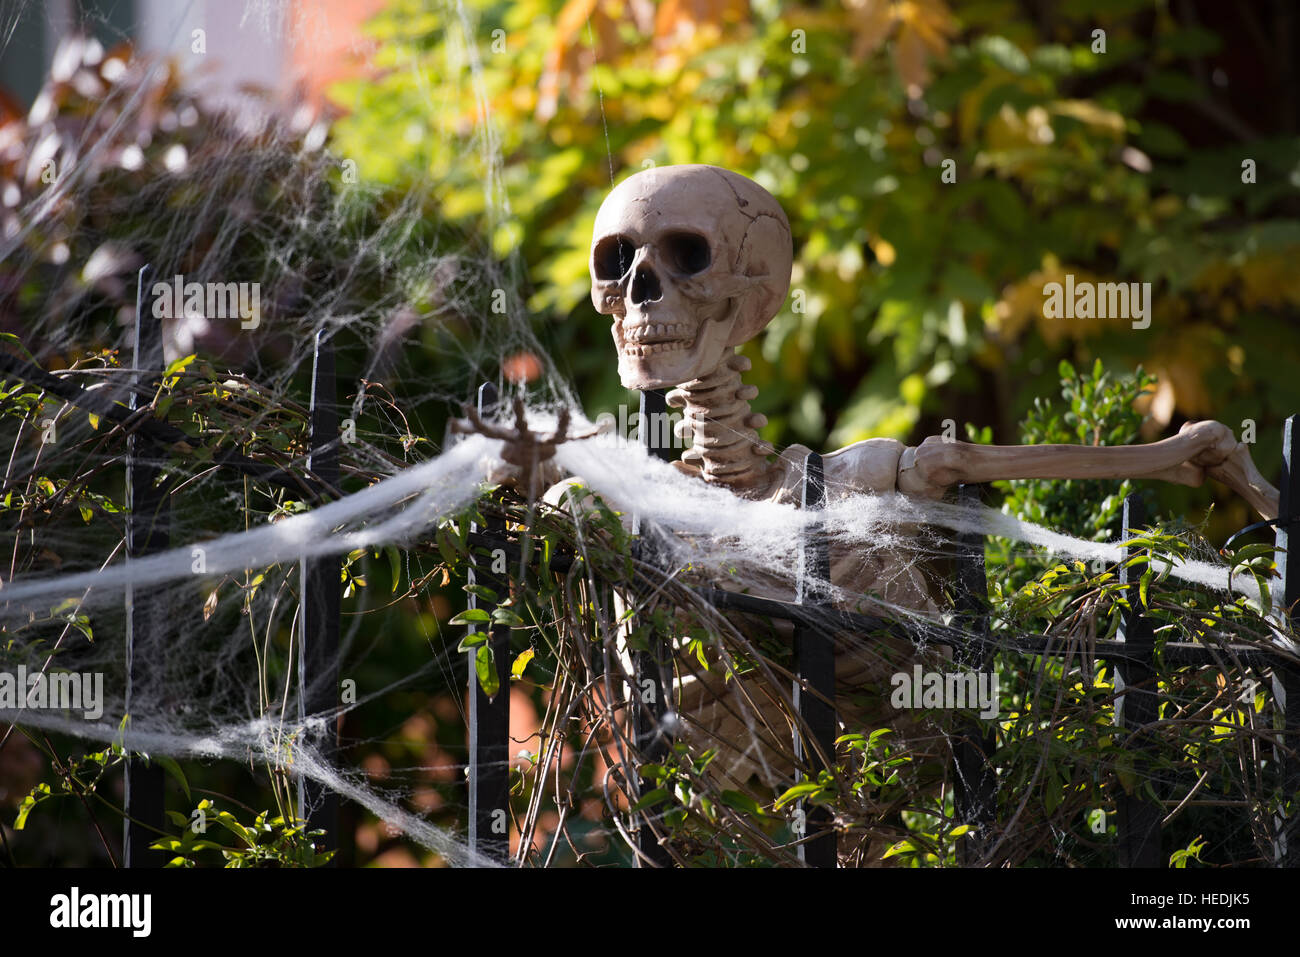 Funny Skeletons Stock Photos & Funny Skeletons Stock Images